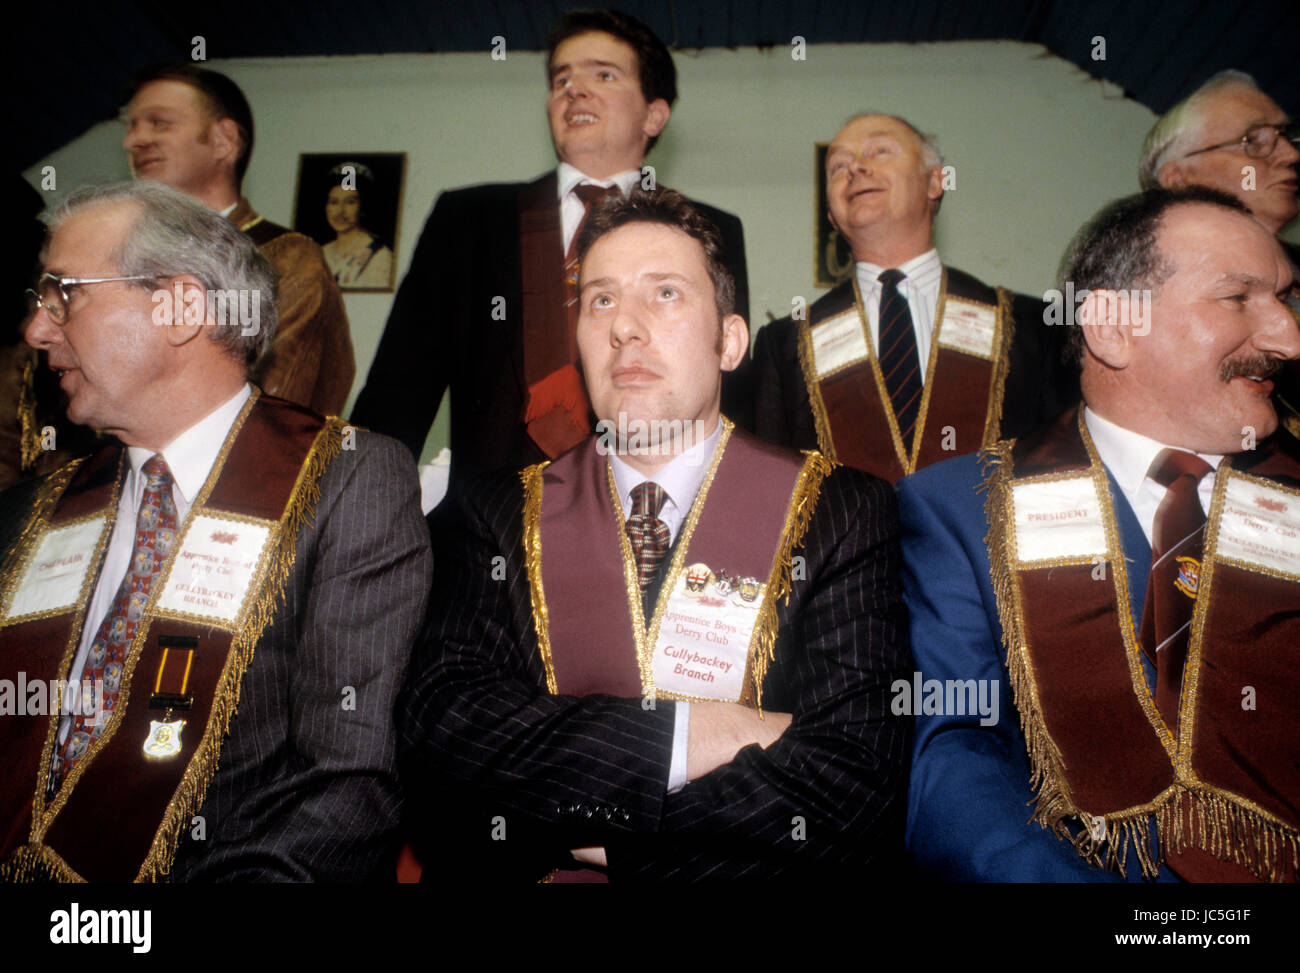 Ian Richard Kyle Paisley Jr. MP is the Member of Parliament for North Antrim, Northern Ireland. - Stock Image